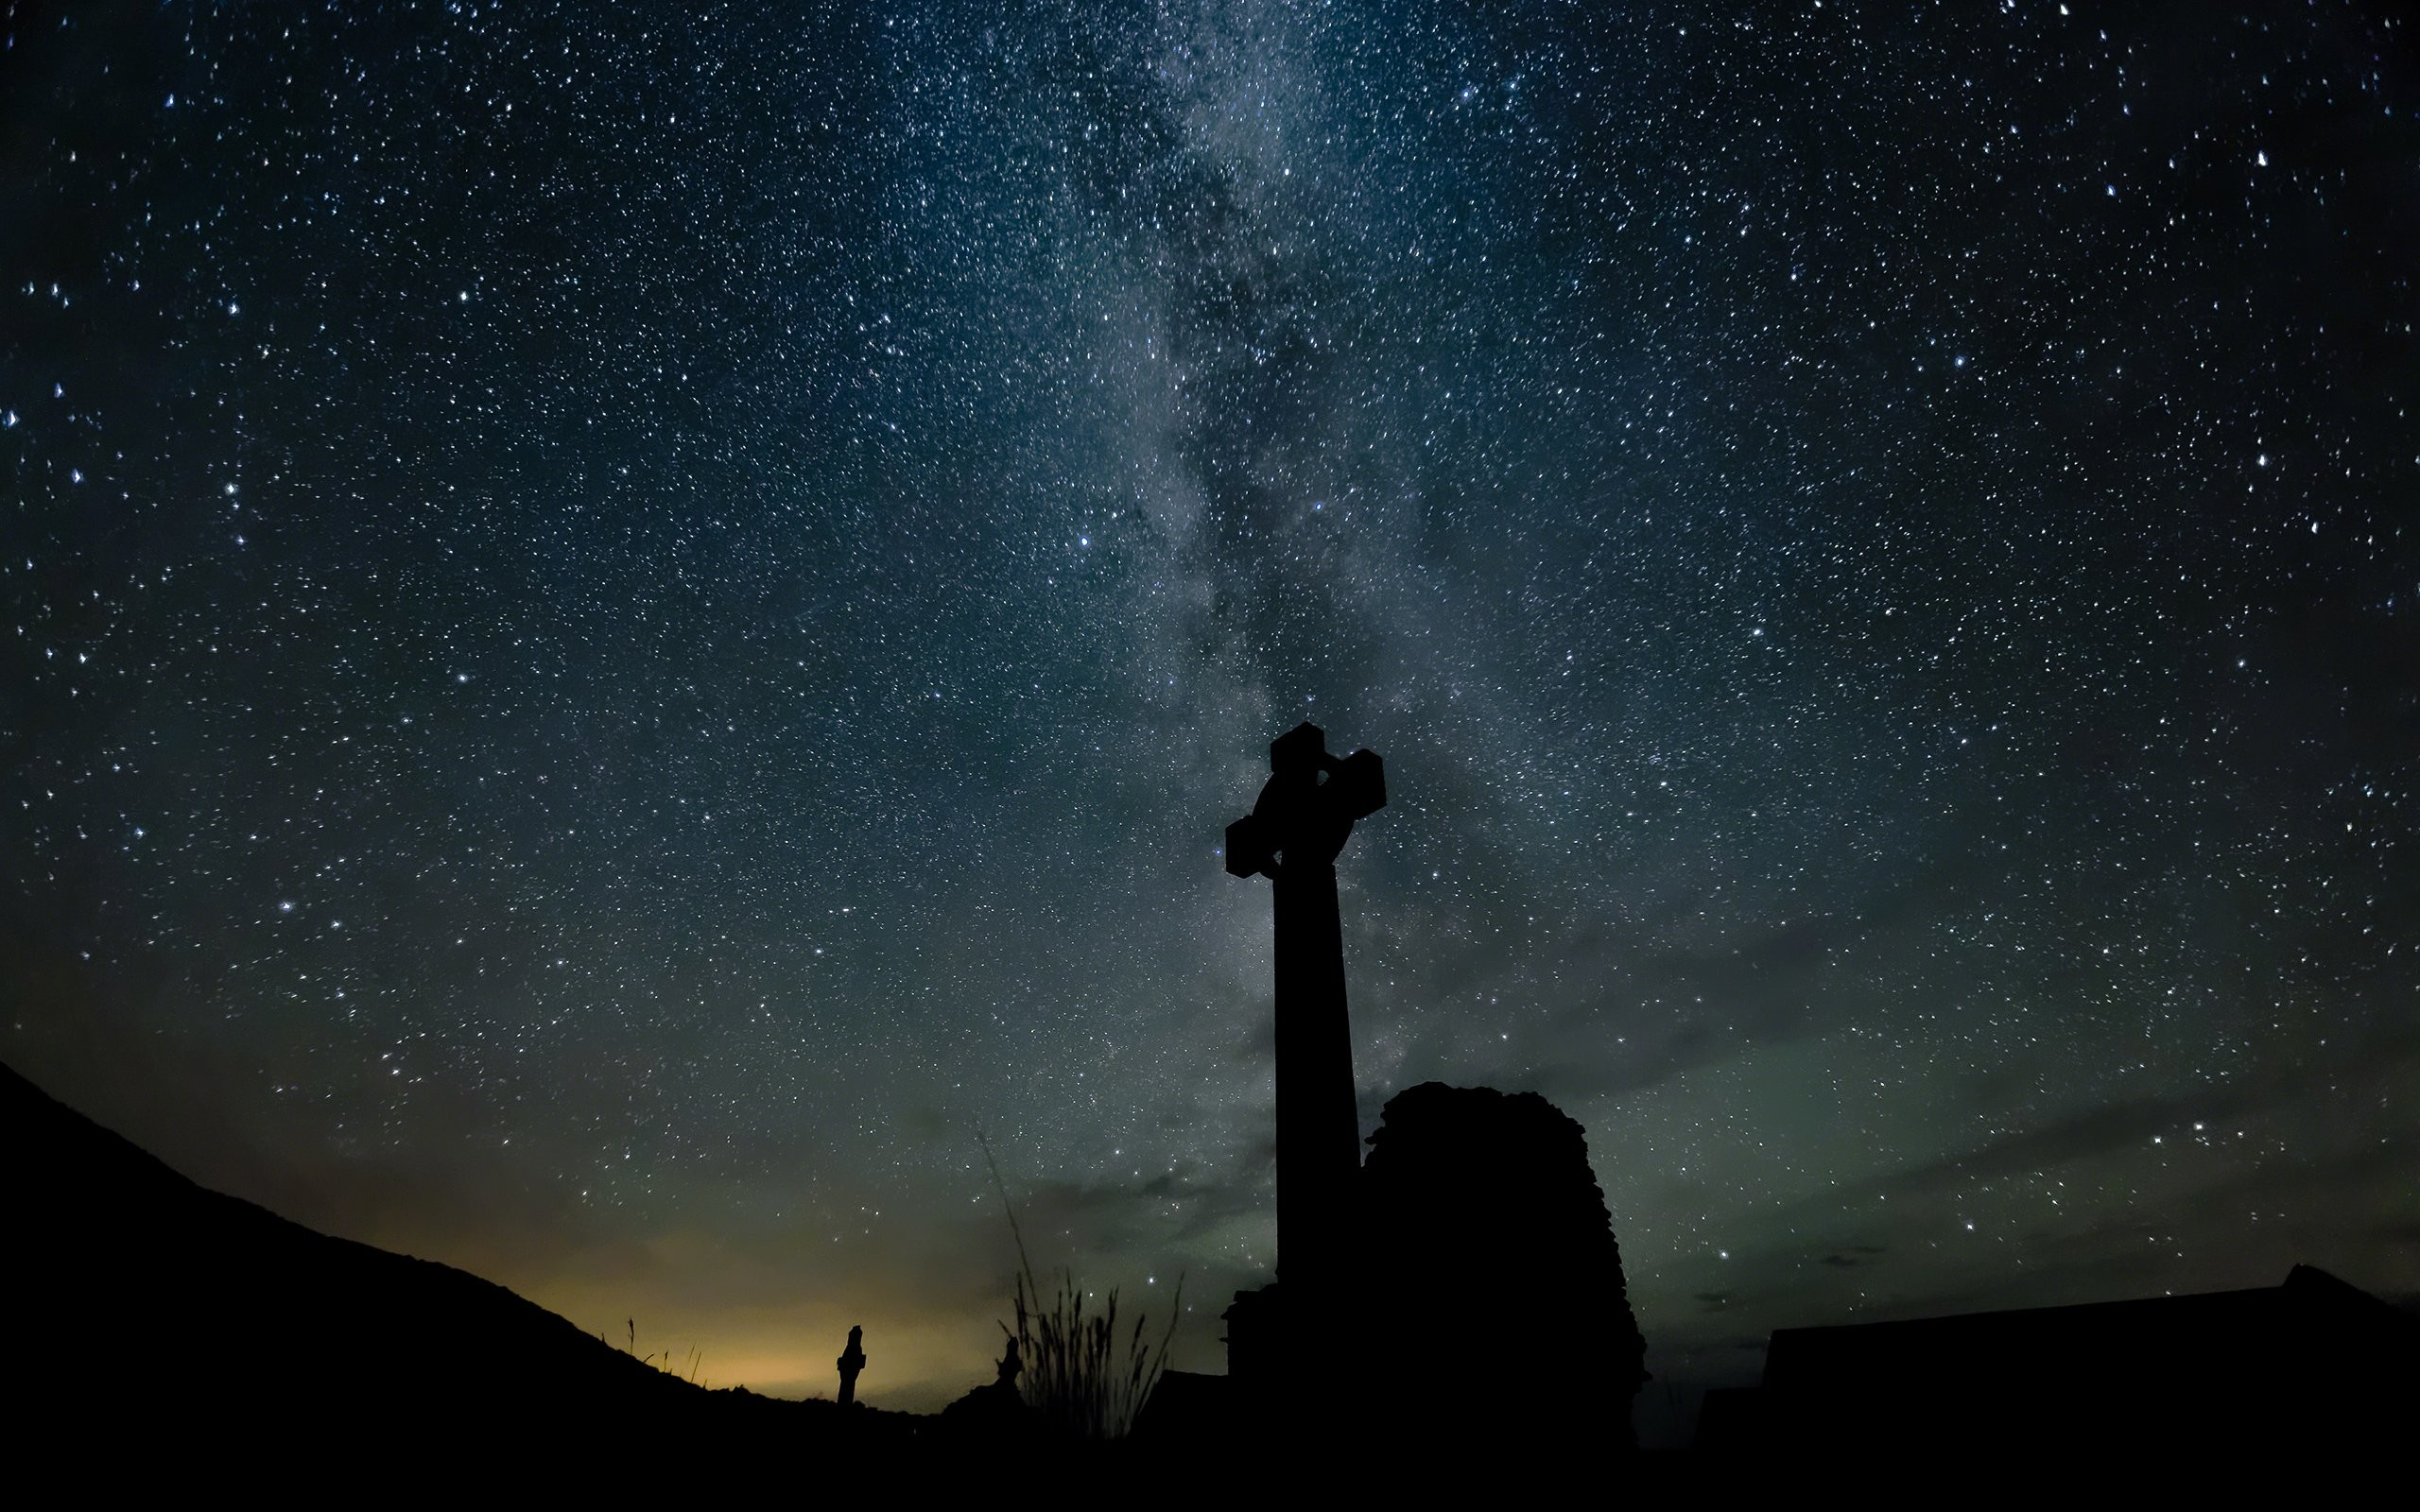 2560x1600 Stars Night Cross Galaxy Milky Way wallpaper |  | 248055 .